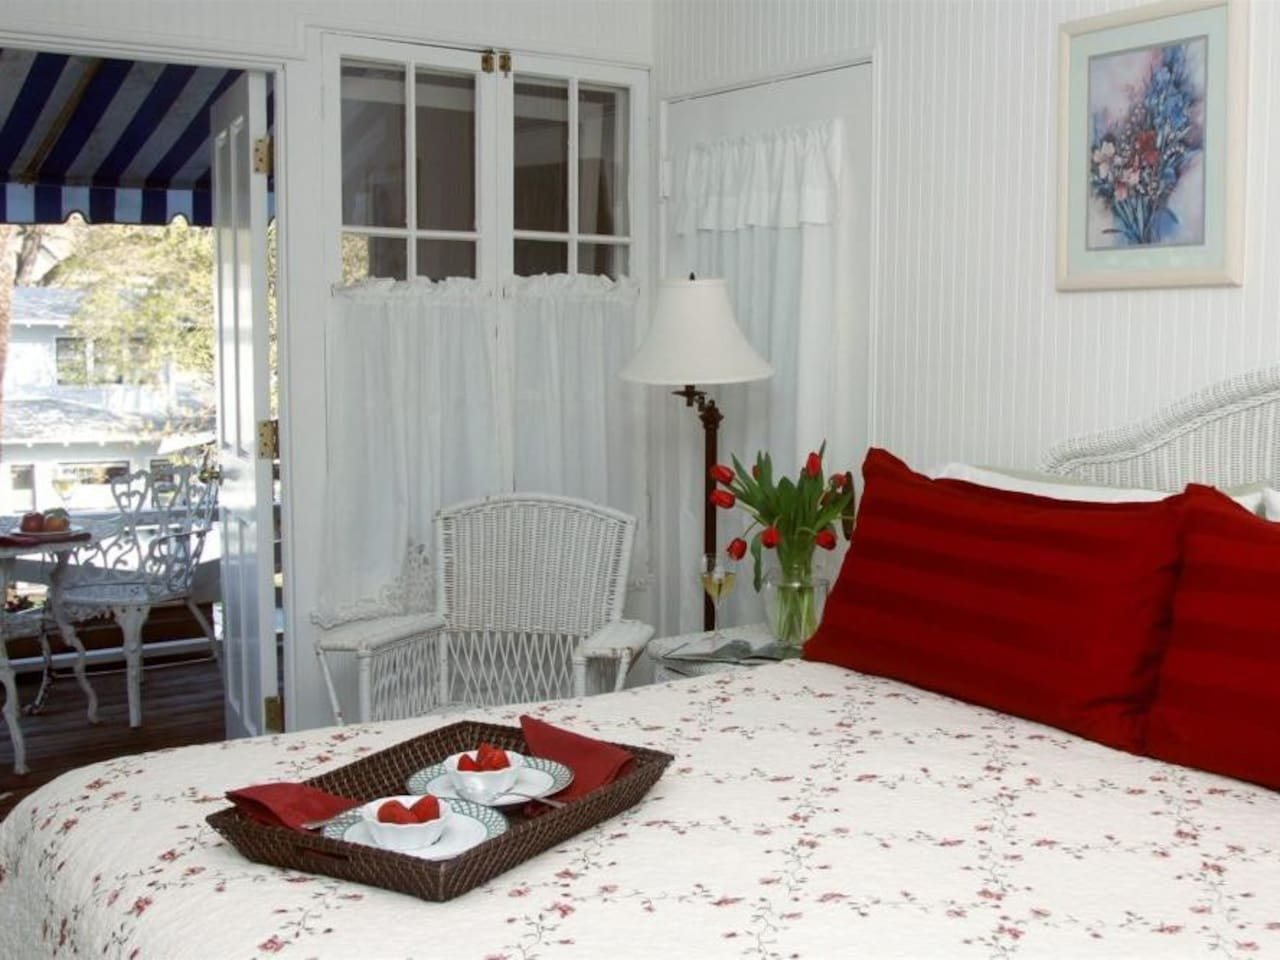 Breakfast in Bed or on your private balcony, in the Sun Room it's up to you! The only room with a 6 ft clawtub and a separate shower.  This sunny room is one of our most popular.